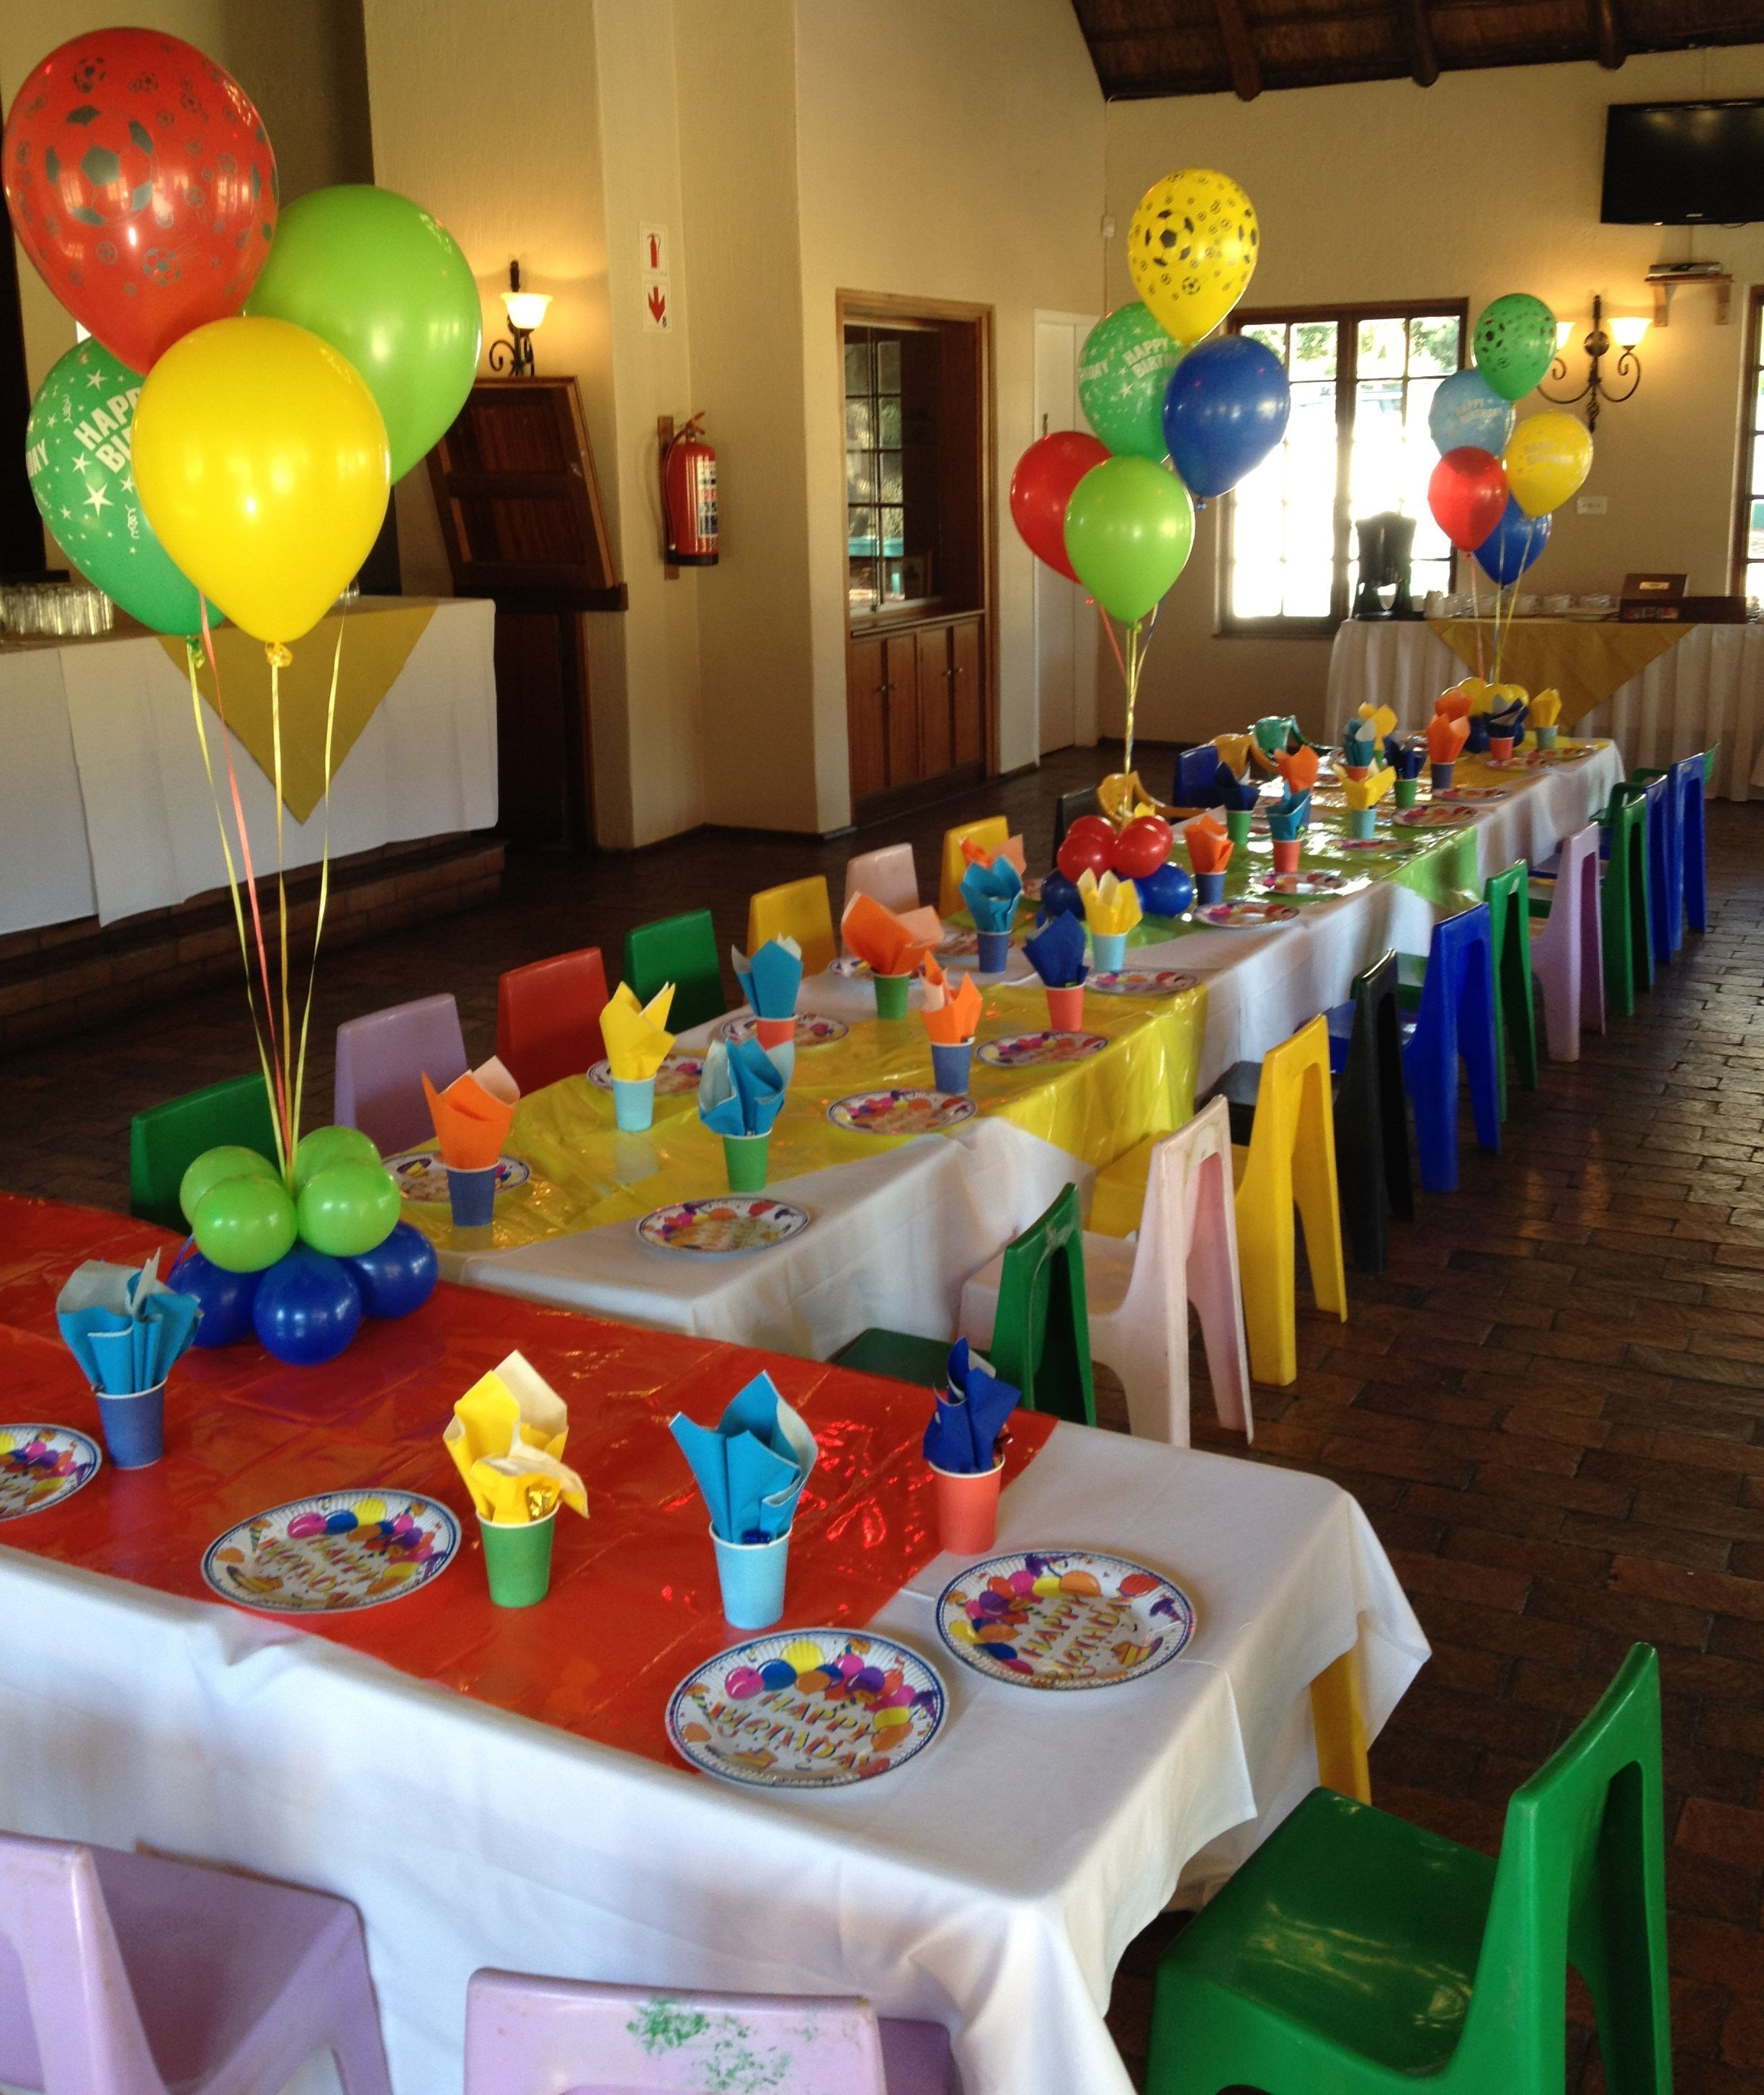 Good colors for Sesame street party or Lego party